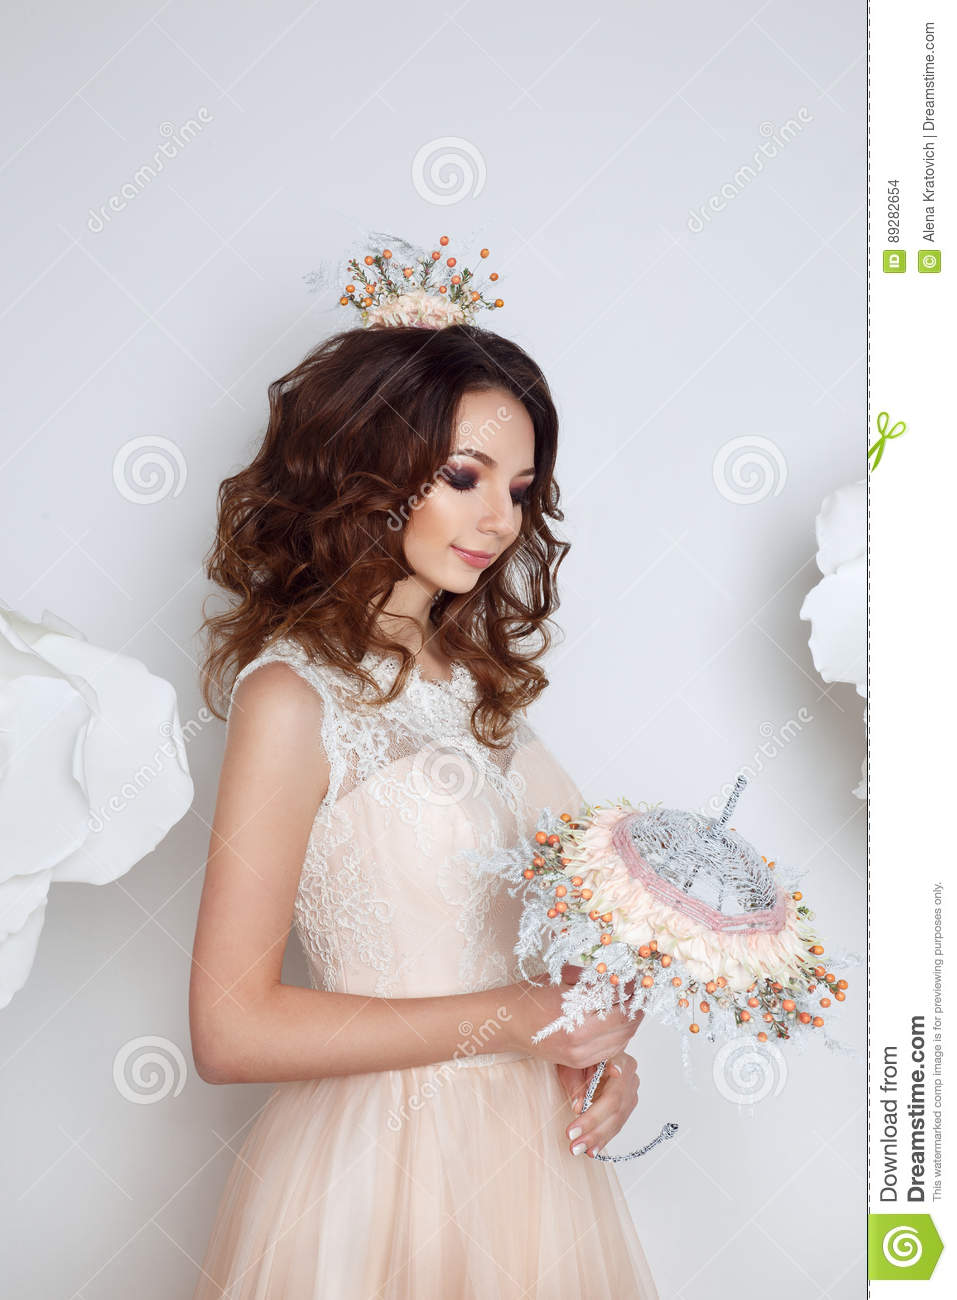 Beautiful bride posing in peach wedding dress and flower crown in a download beautiful bride posing in peach wedding dress and flower crown in a white photo studio izmirmasajfo